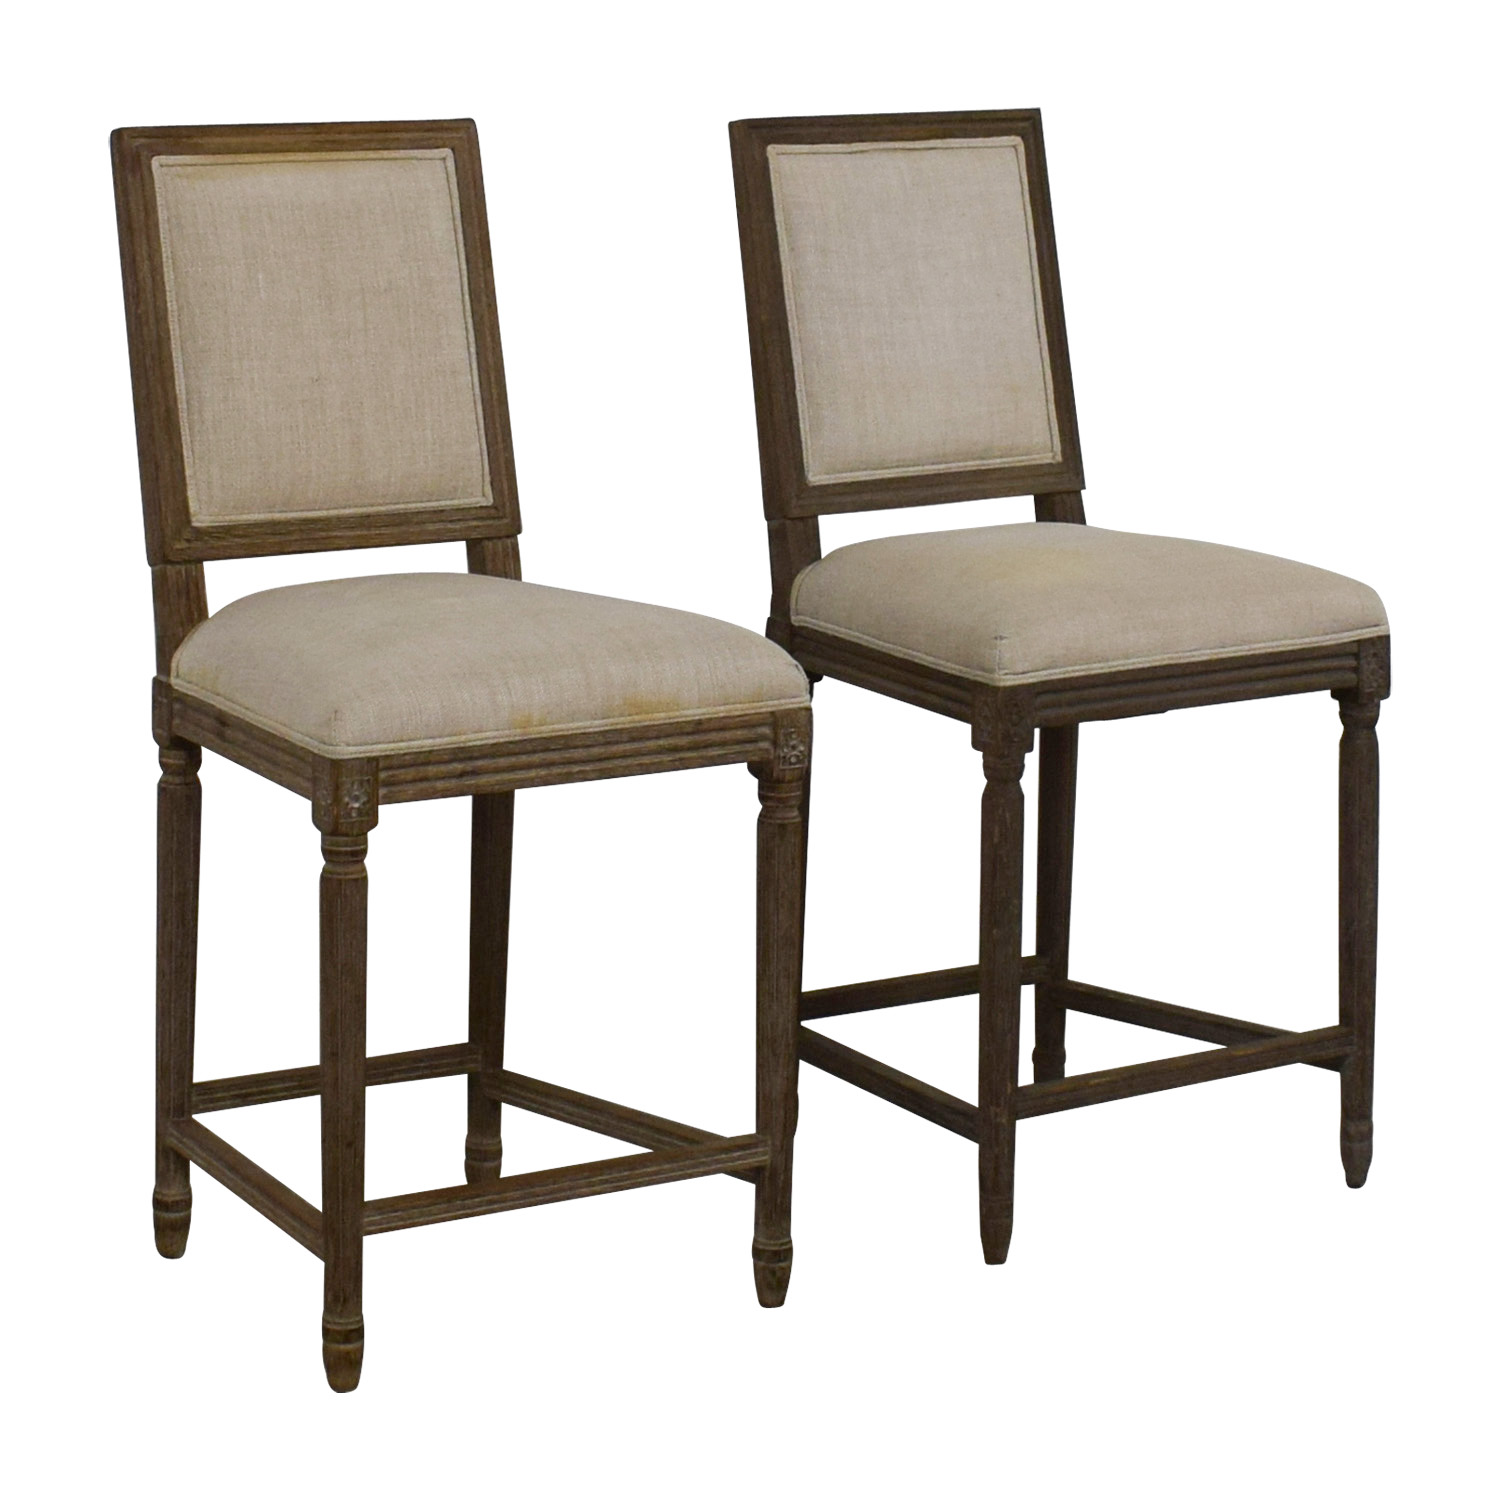 buy Restoration Hardware Restoration Hardware Vintage French Square Counter Stools online